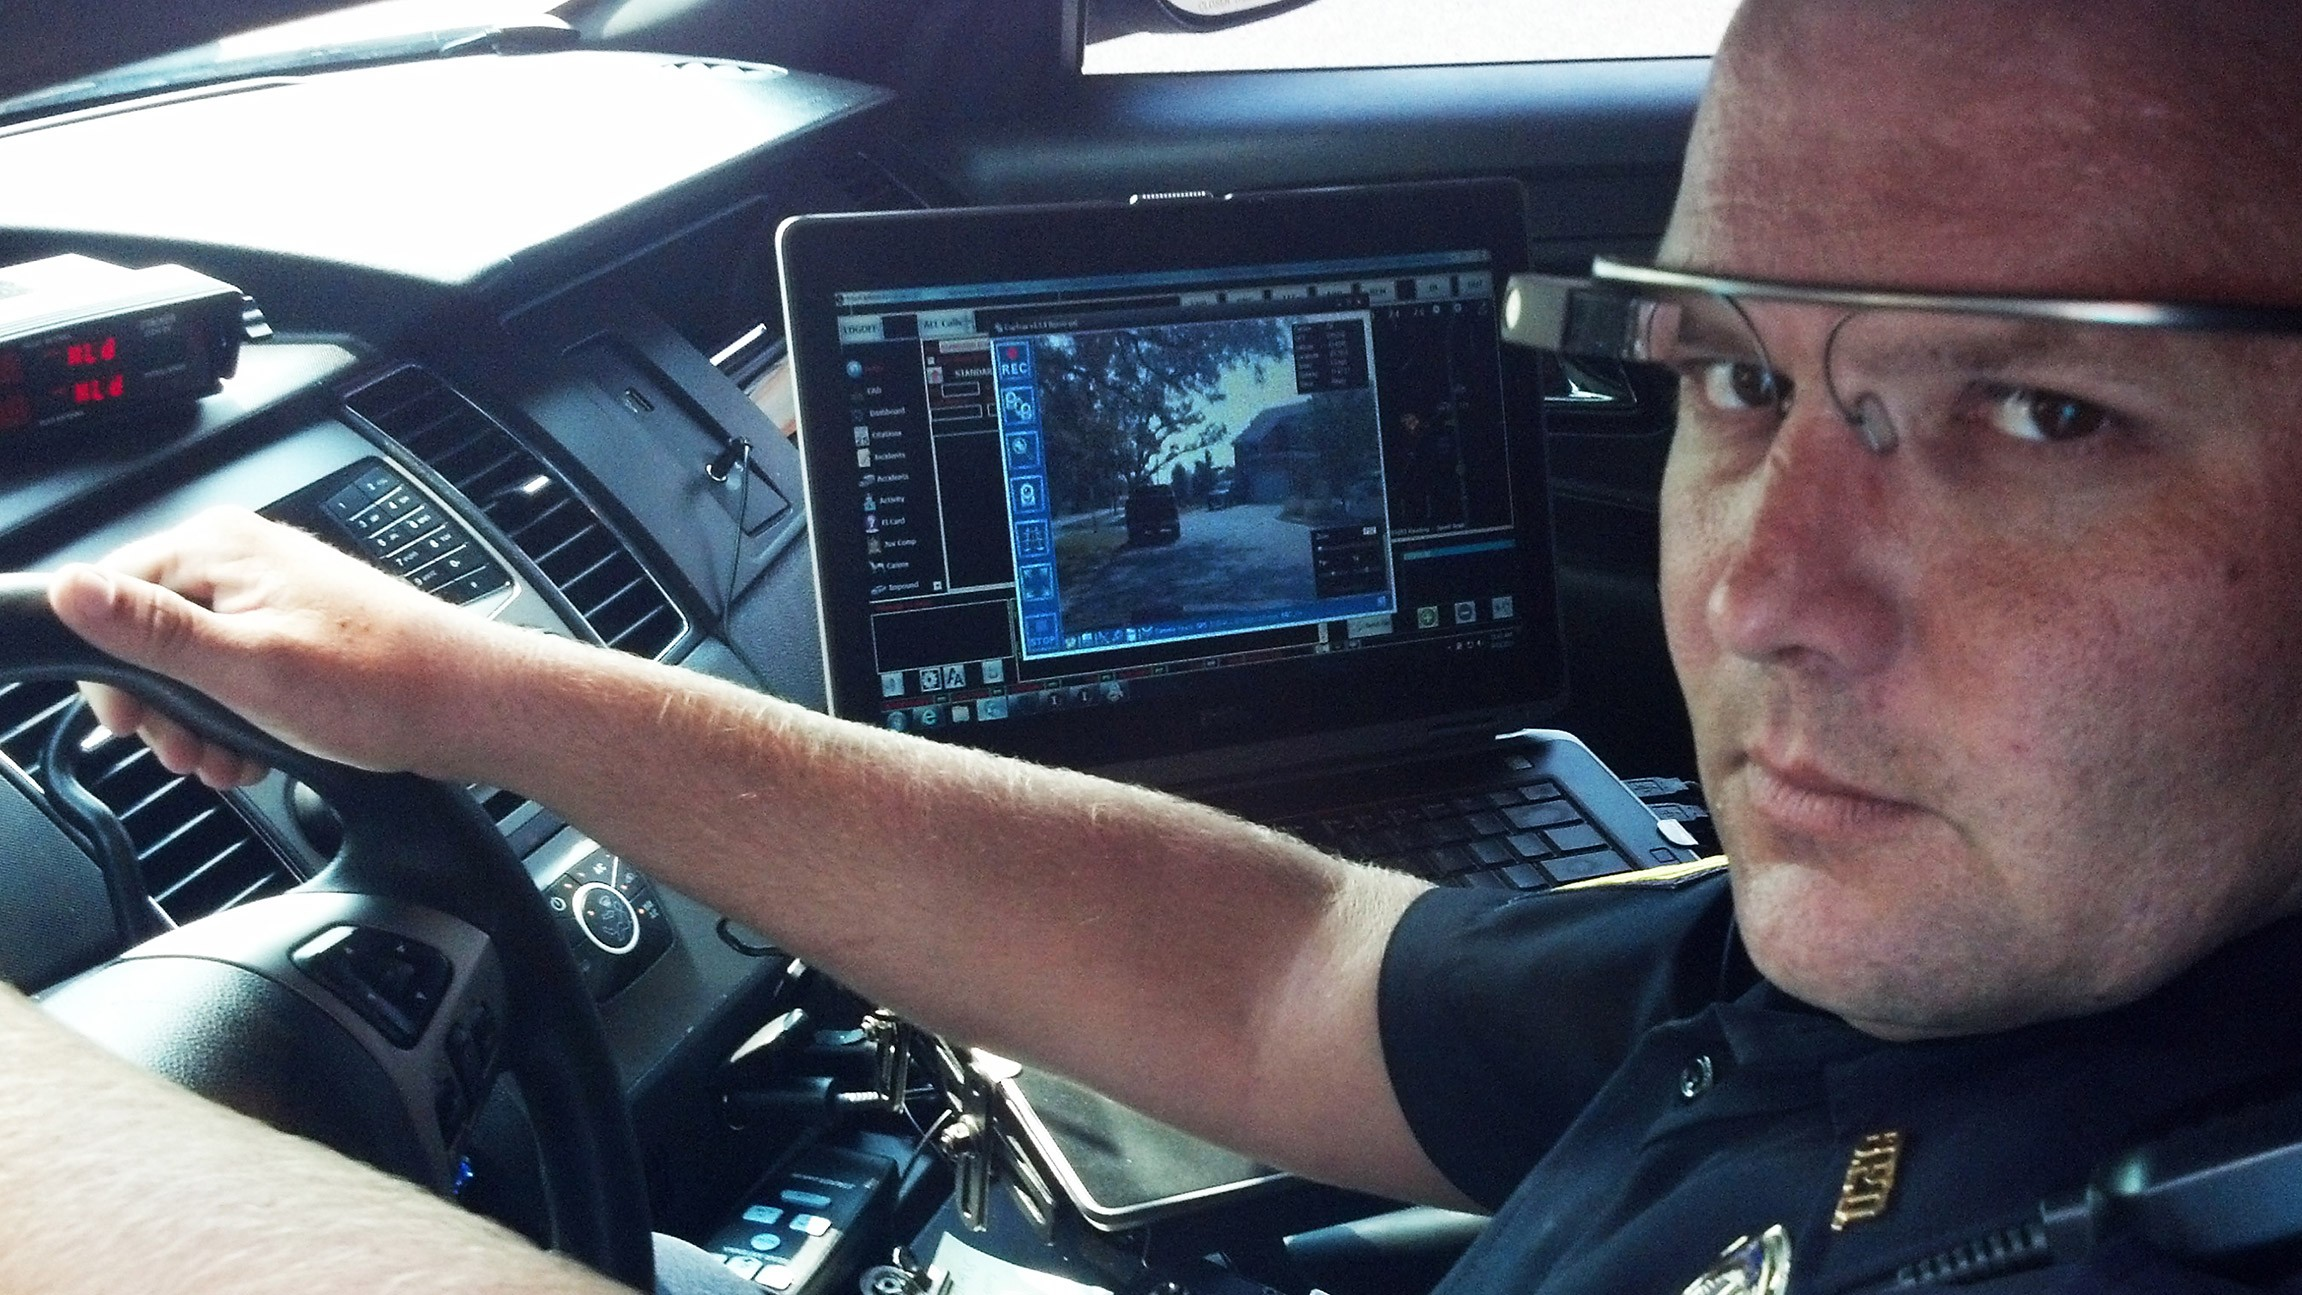 Bans on Driving with Google Glass Won't Apply to Police